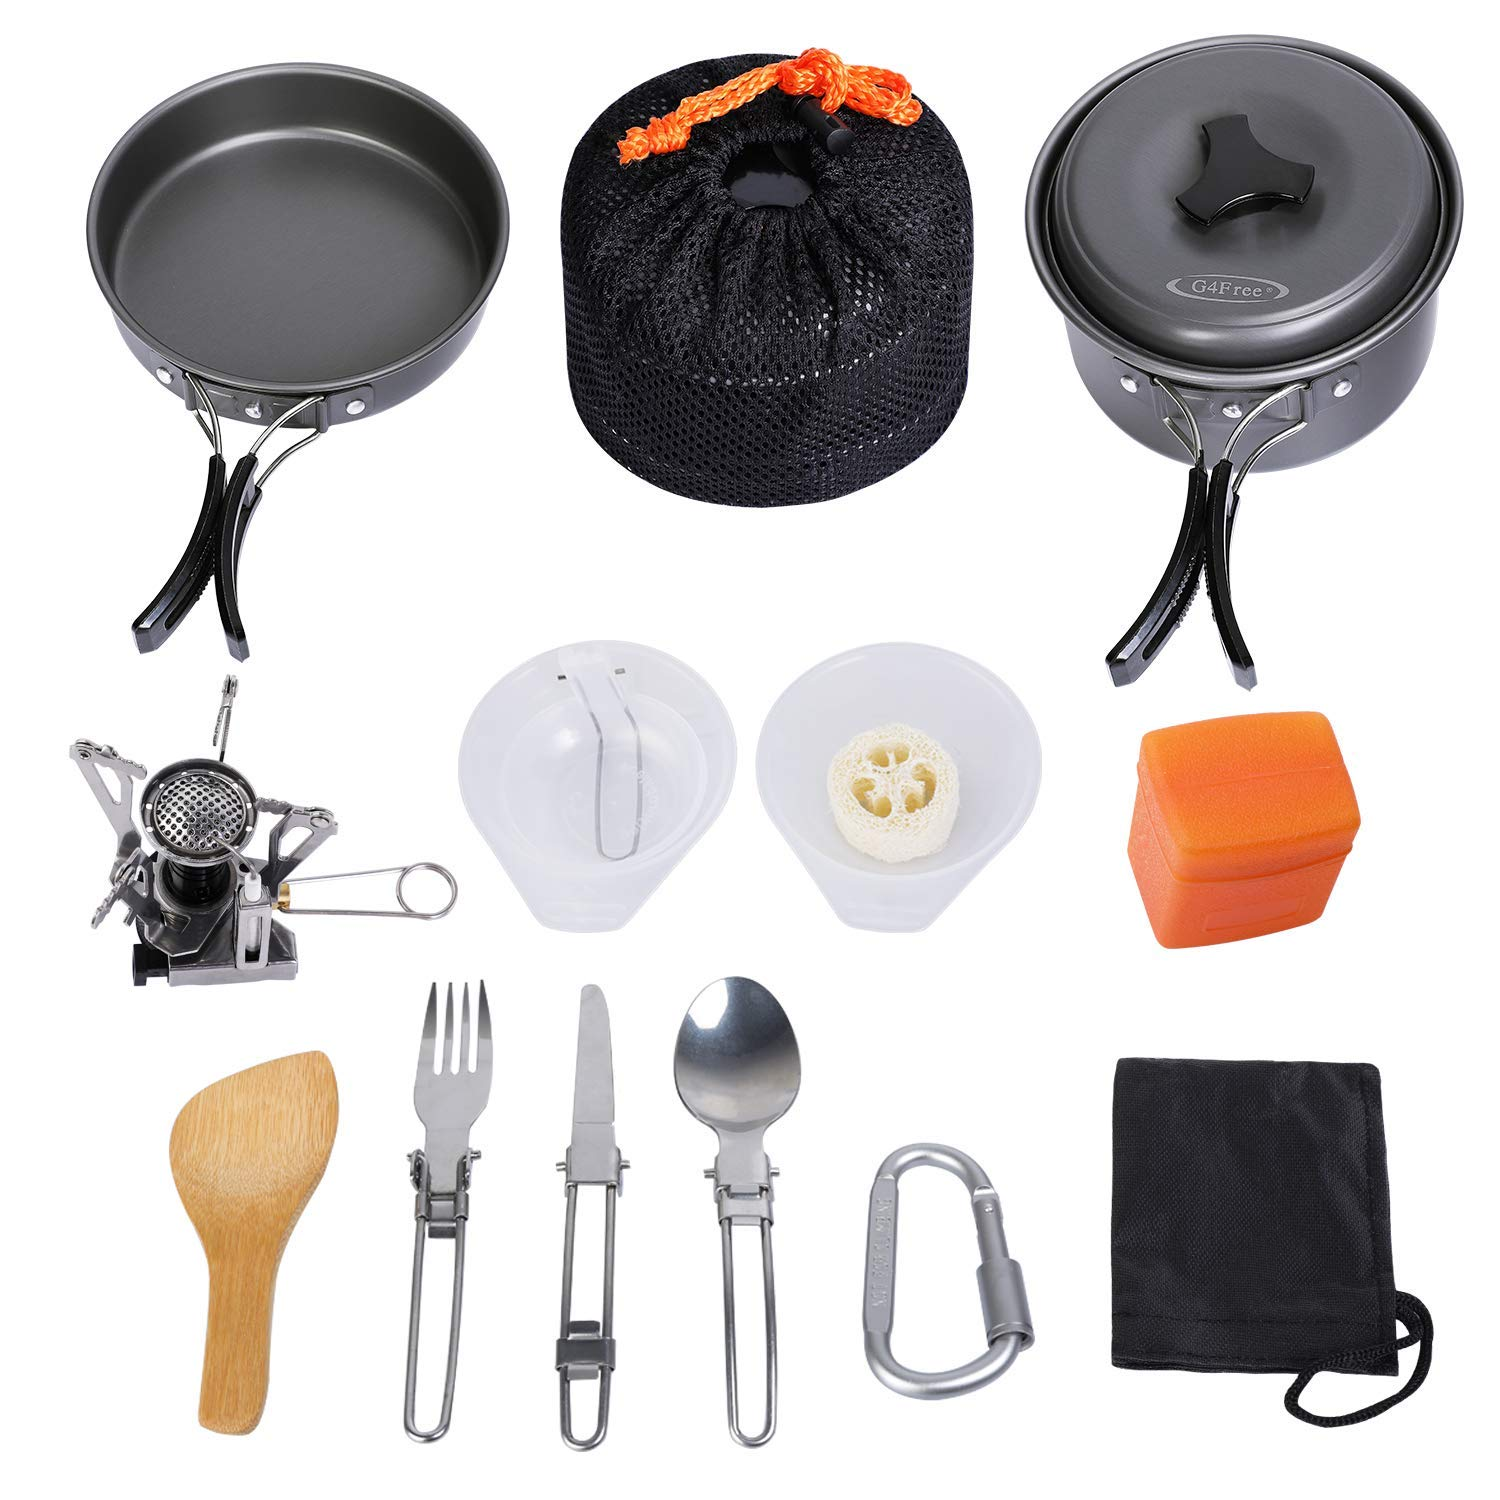 G4Free Outdoor Camping pan Hiking Cookware Backpacking Cooking Picnic Bowl Pot Pan Set 4/13 Piece Camping Cookware Mess Kit Knife Spoon(Grey) by G4Free